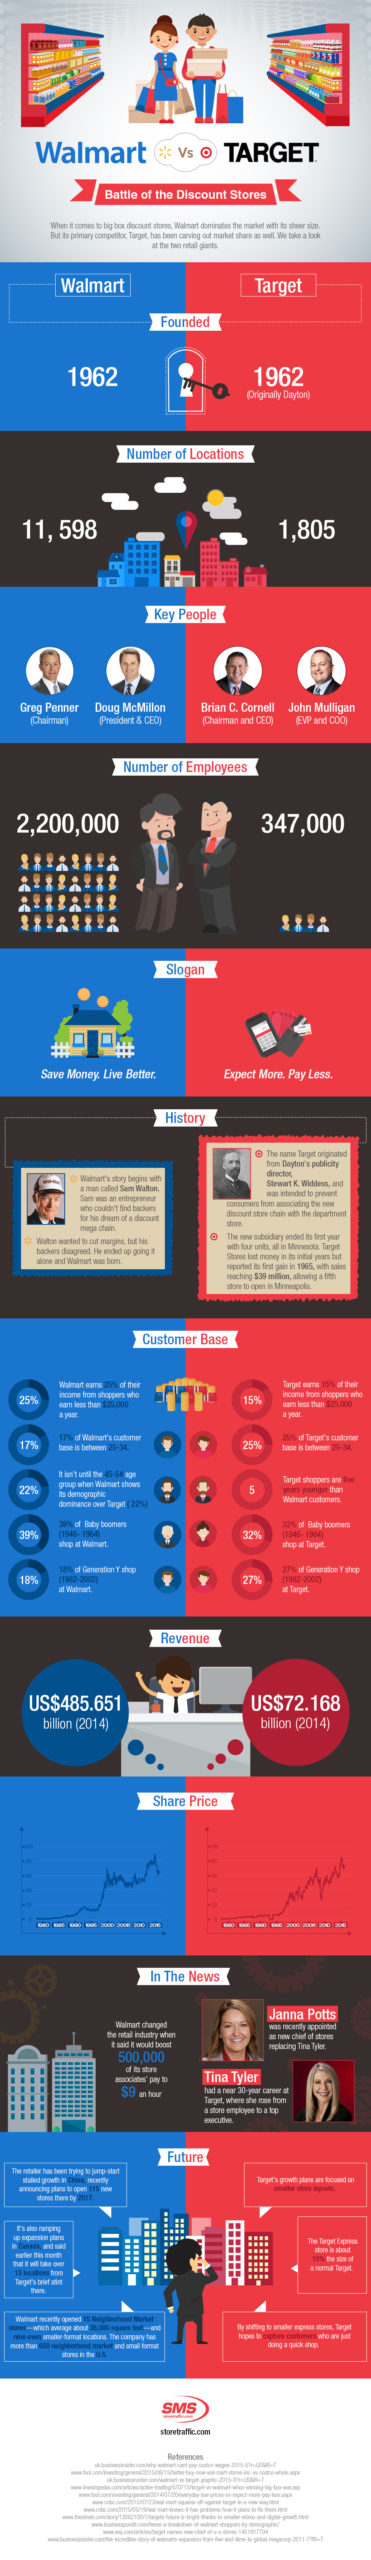 Target Versus Walmart battle of the discount retail stores infographic